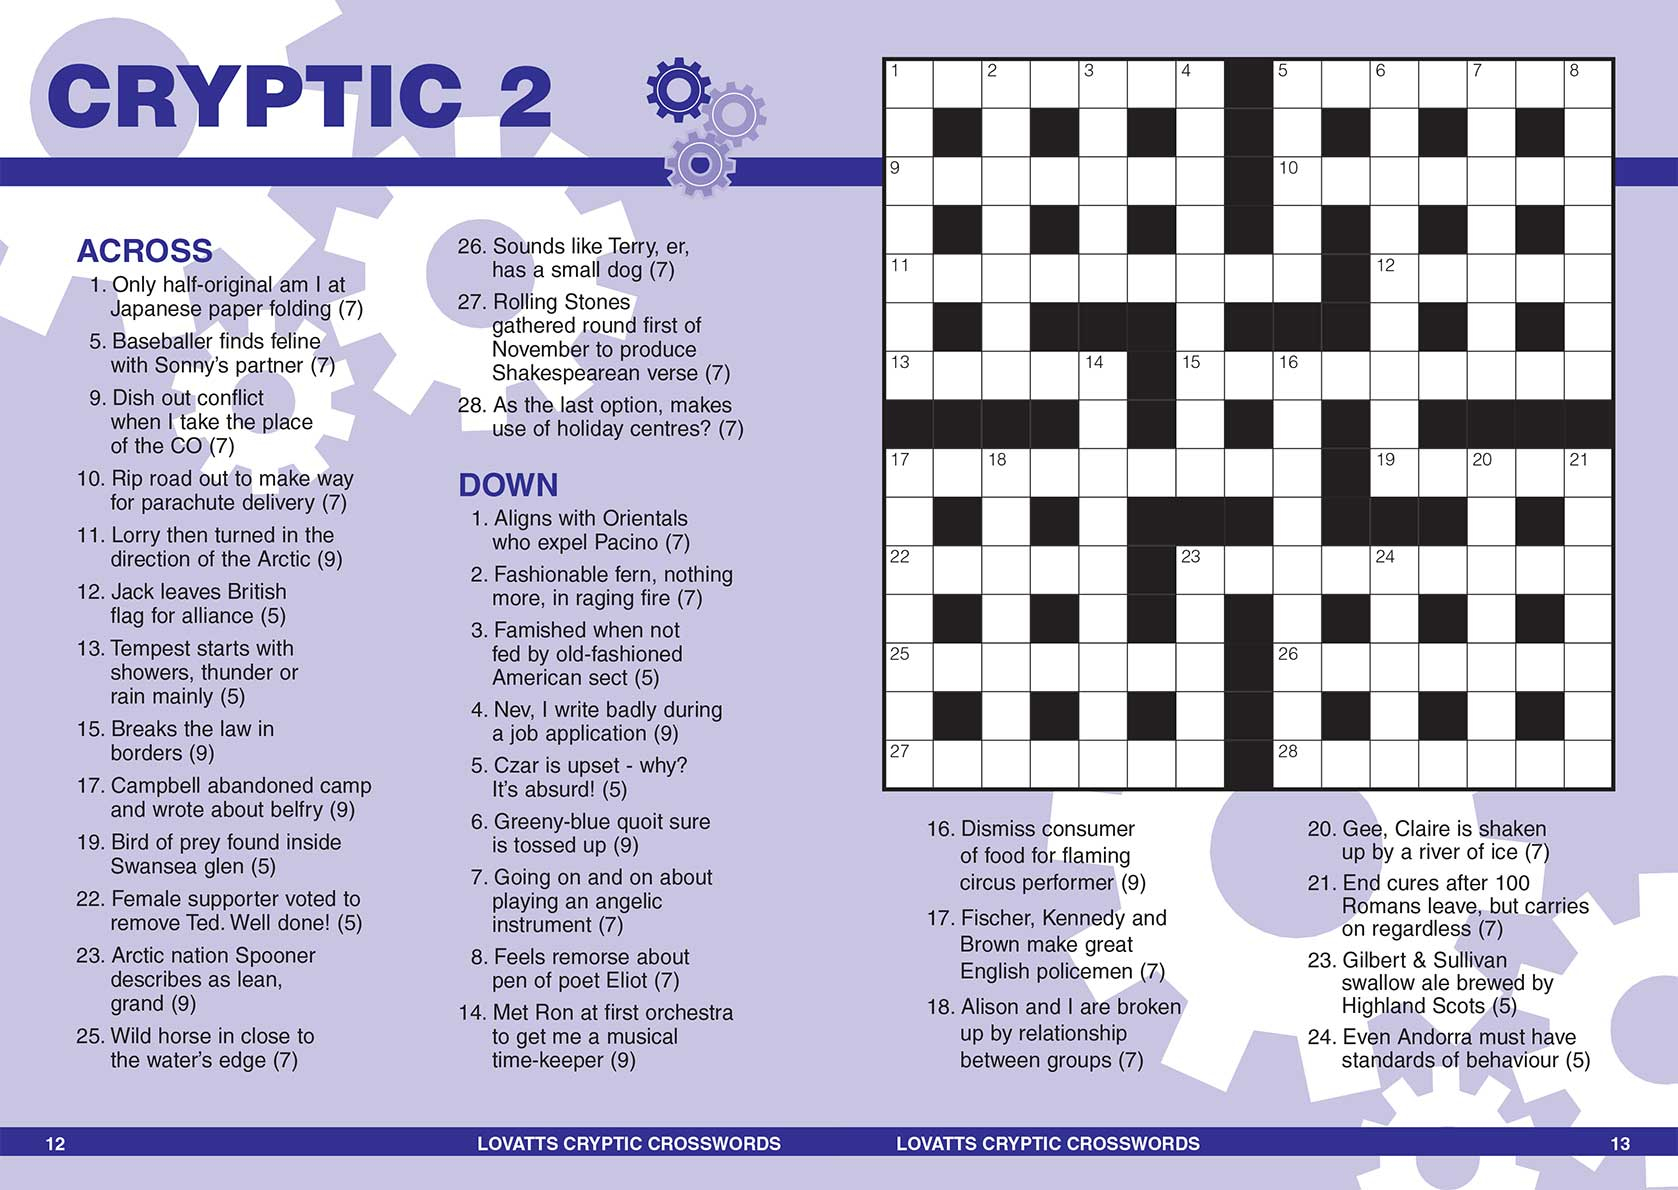 Handy Cryptic Crosswords Magazine - Lovatts Crosswords & Puzzles - Printable Cryptic Crossword Puzzles Nz